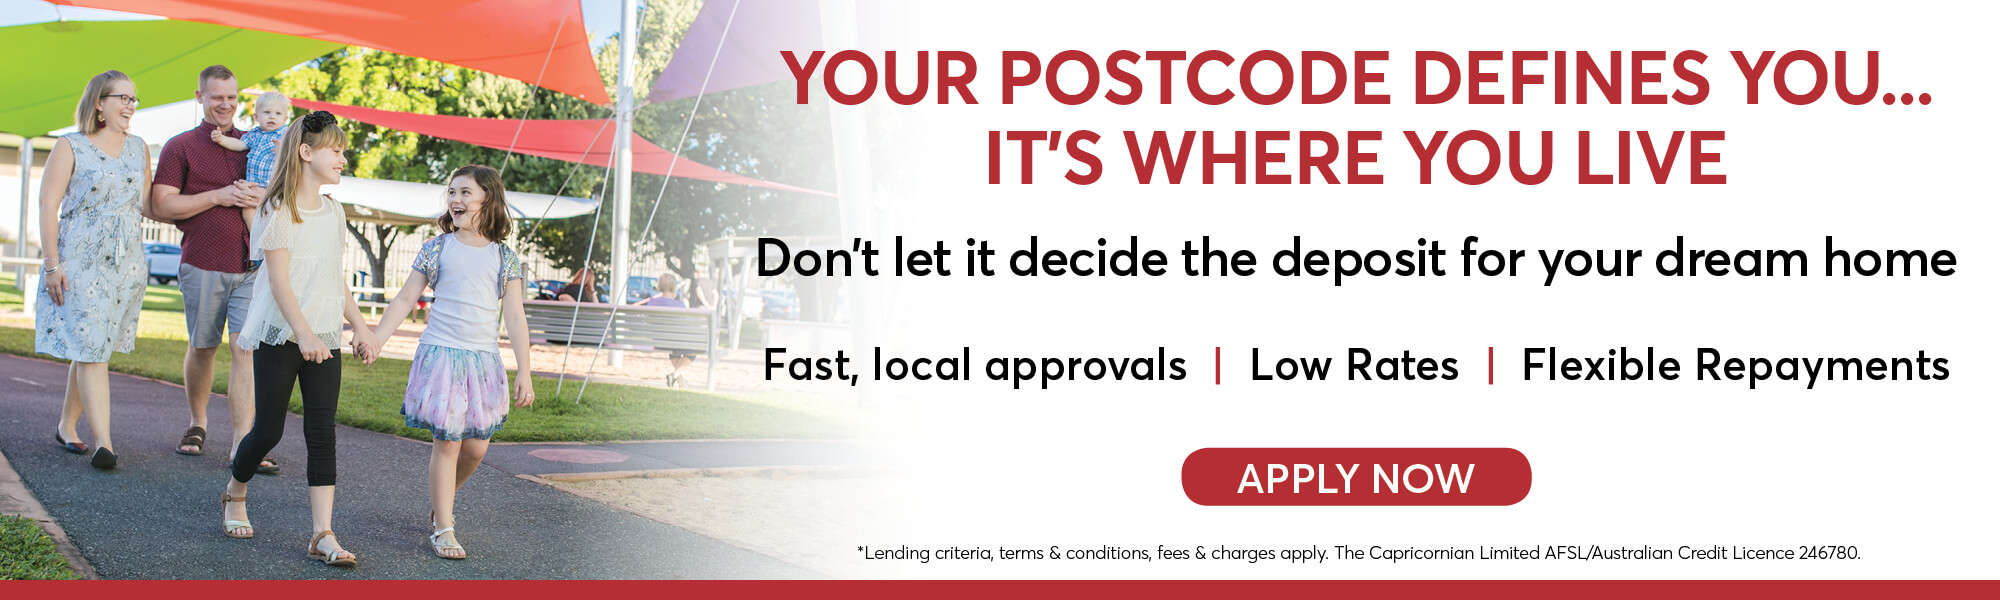 Home loan postcode